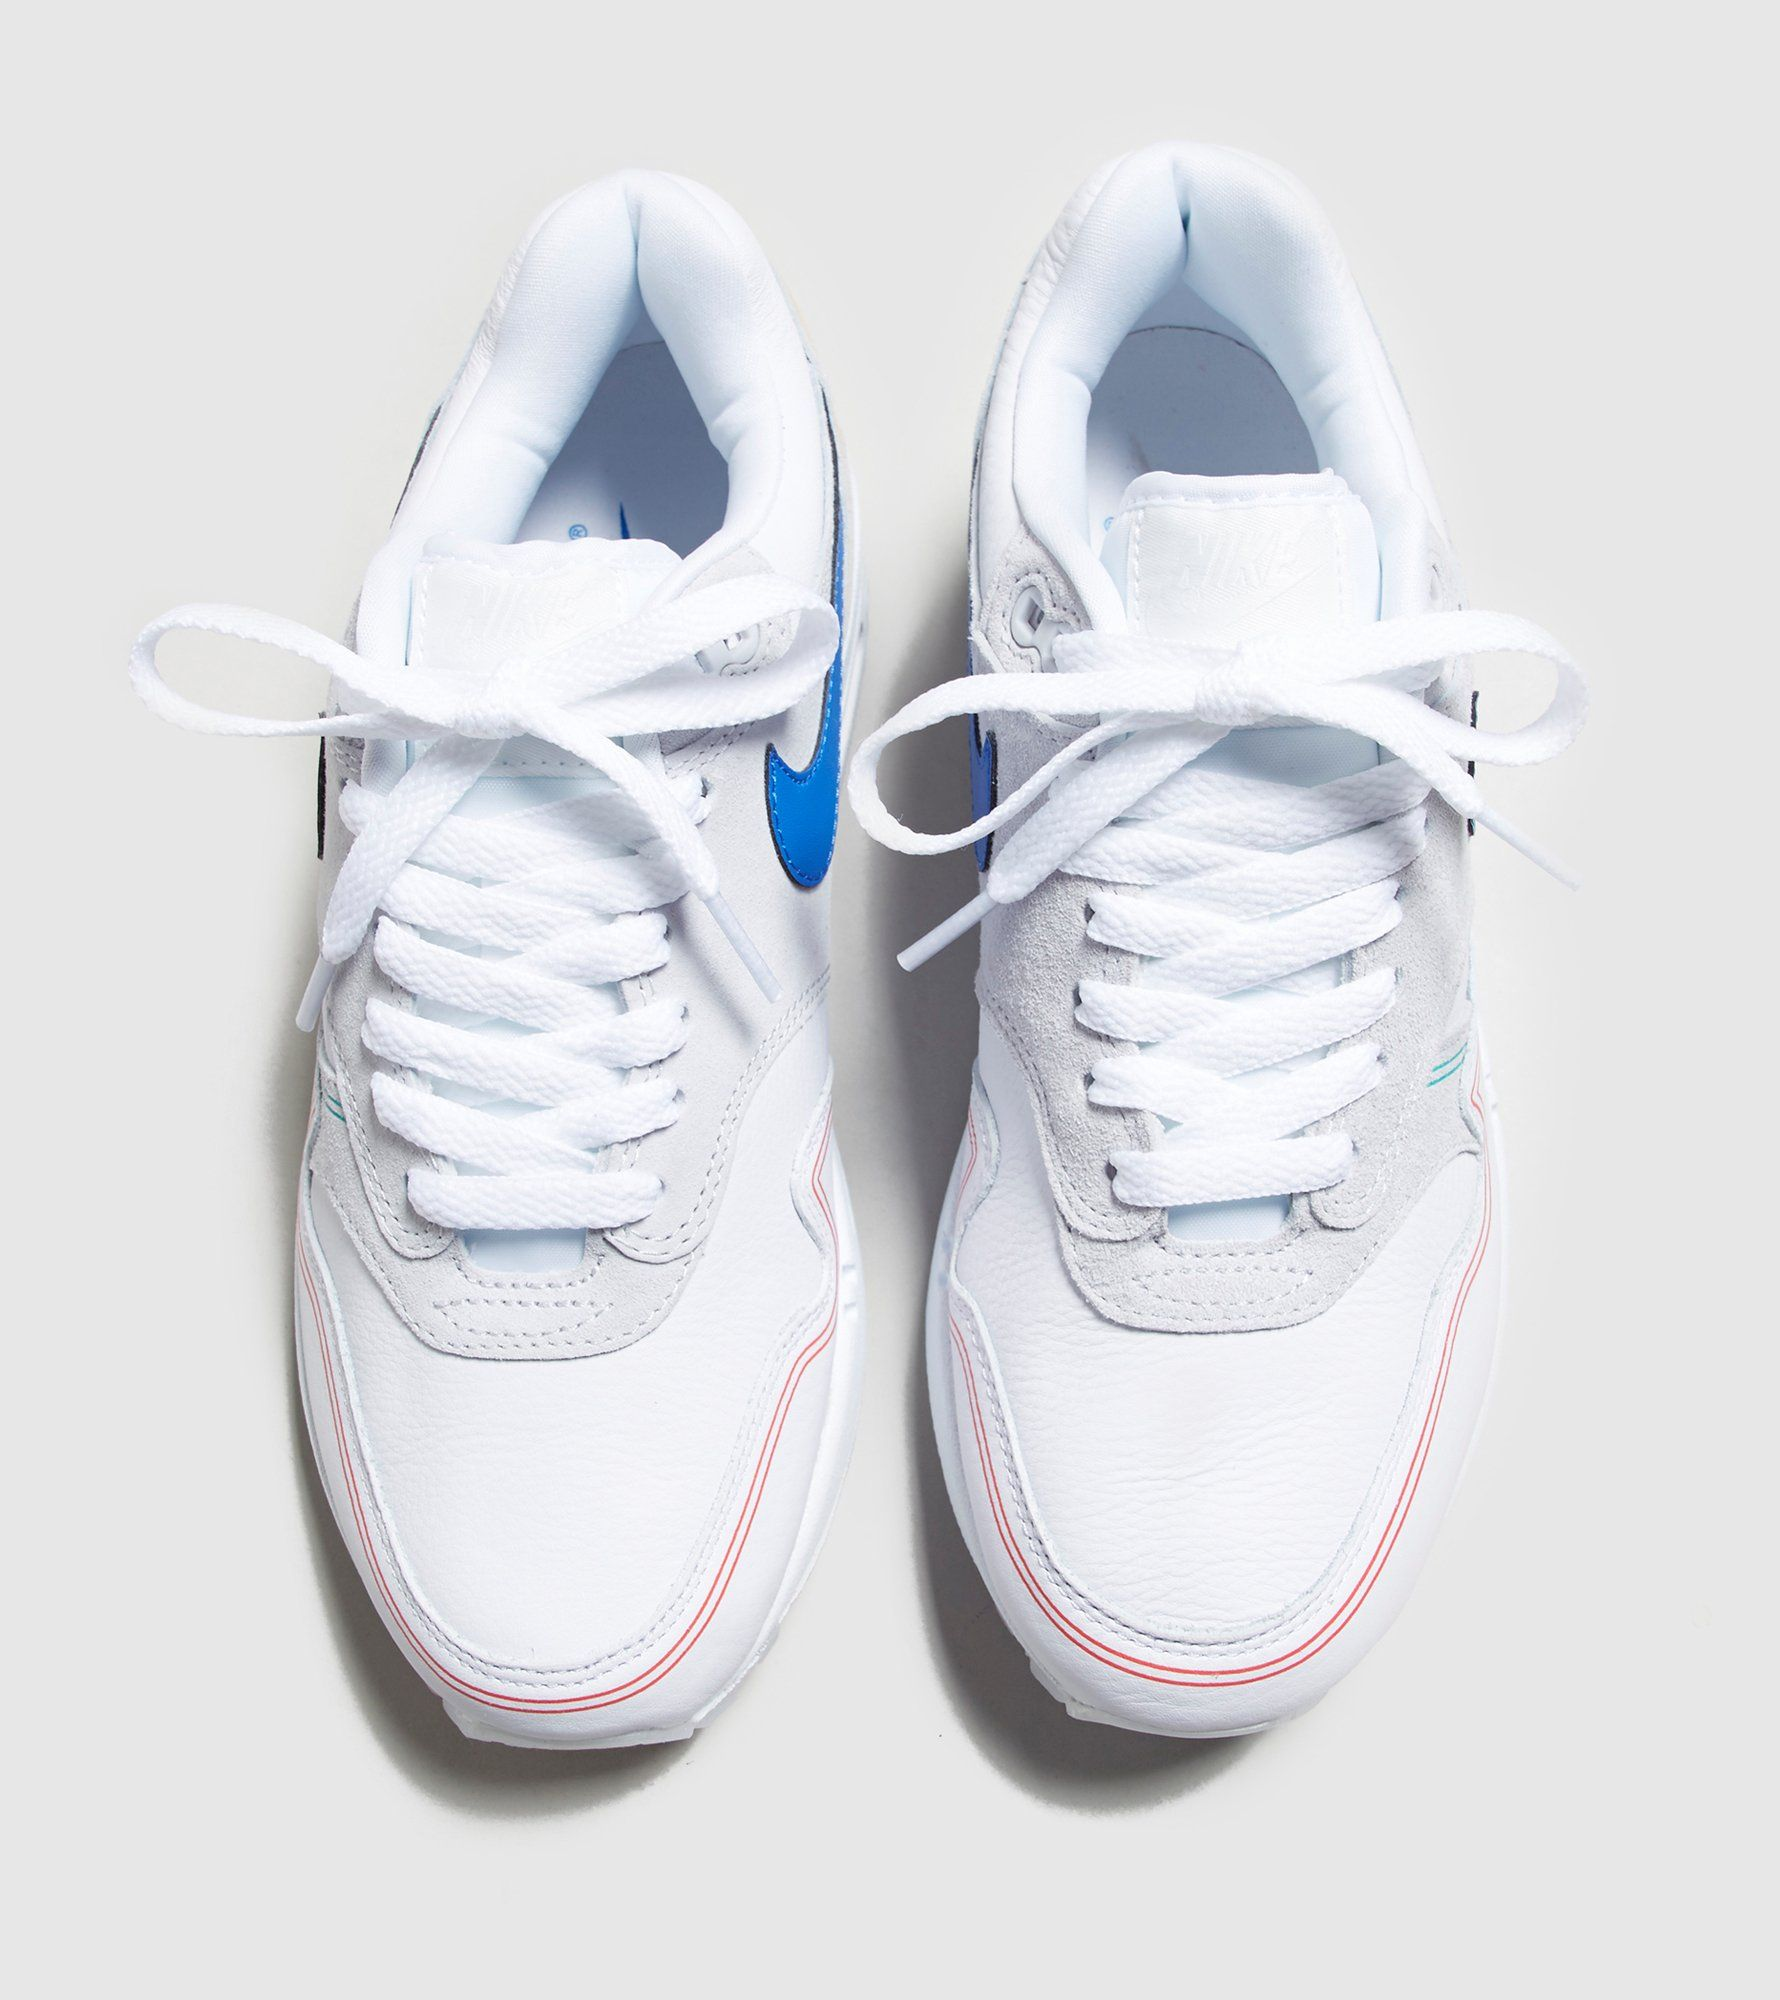 Nike Air Max 1 Pompidou 'By Day' Women's